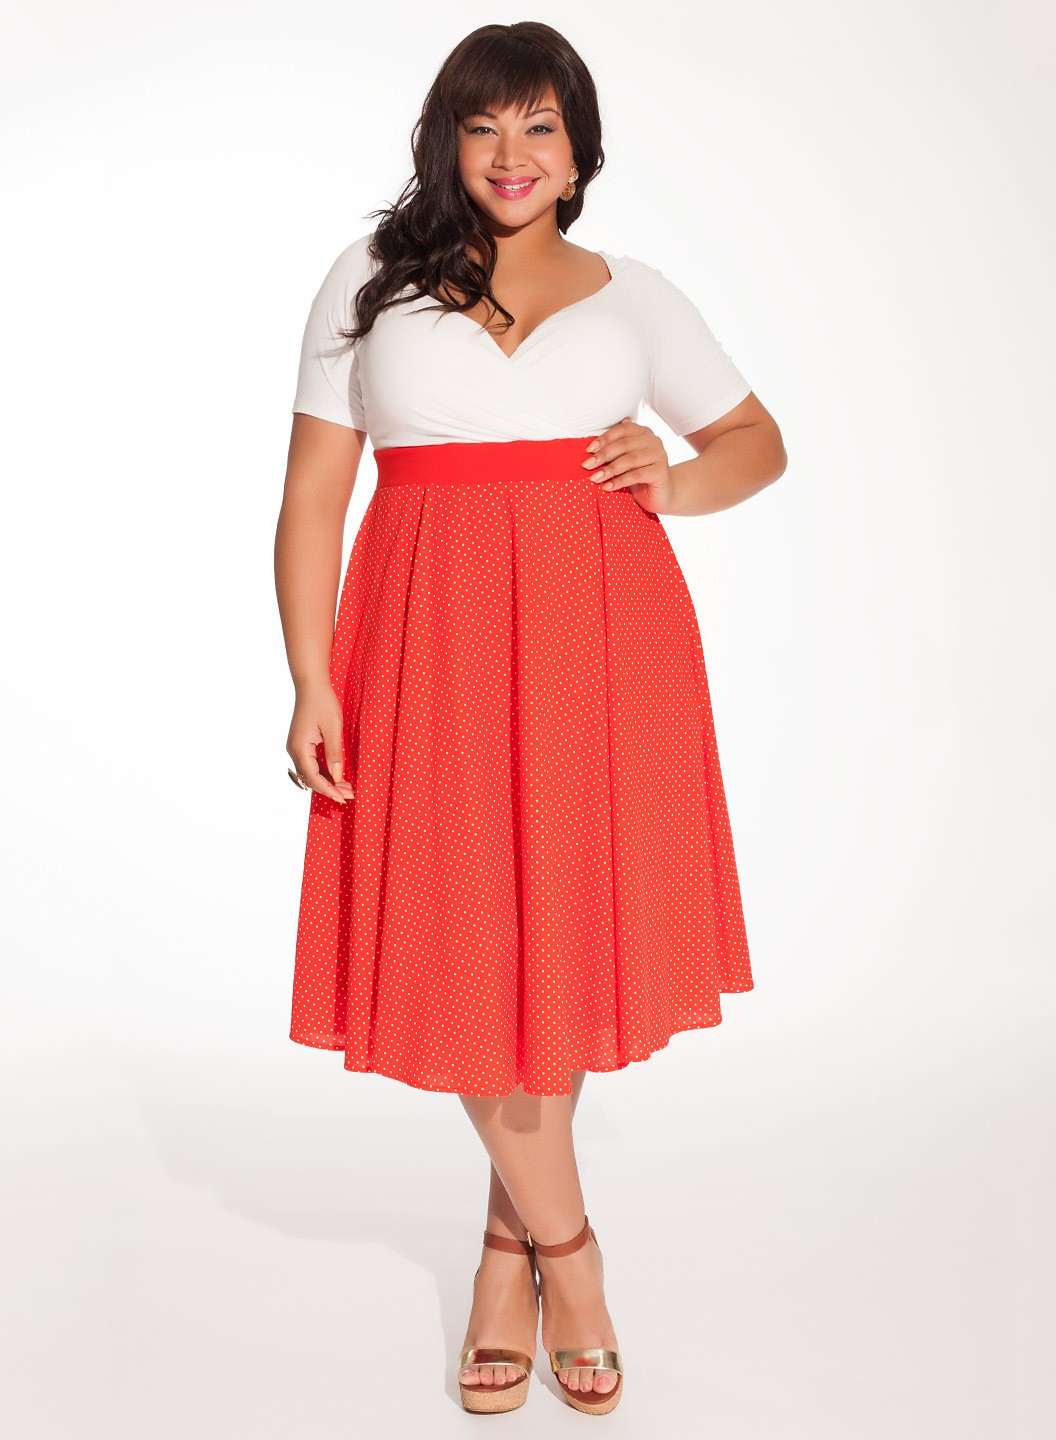 Plus Size Fashion Trends  Summer